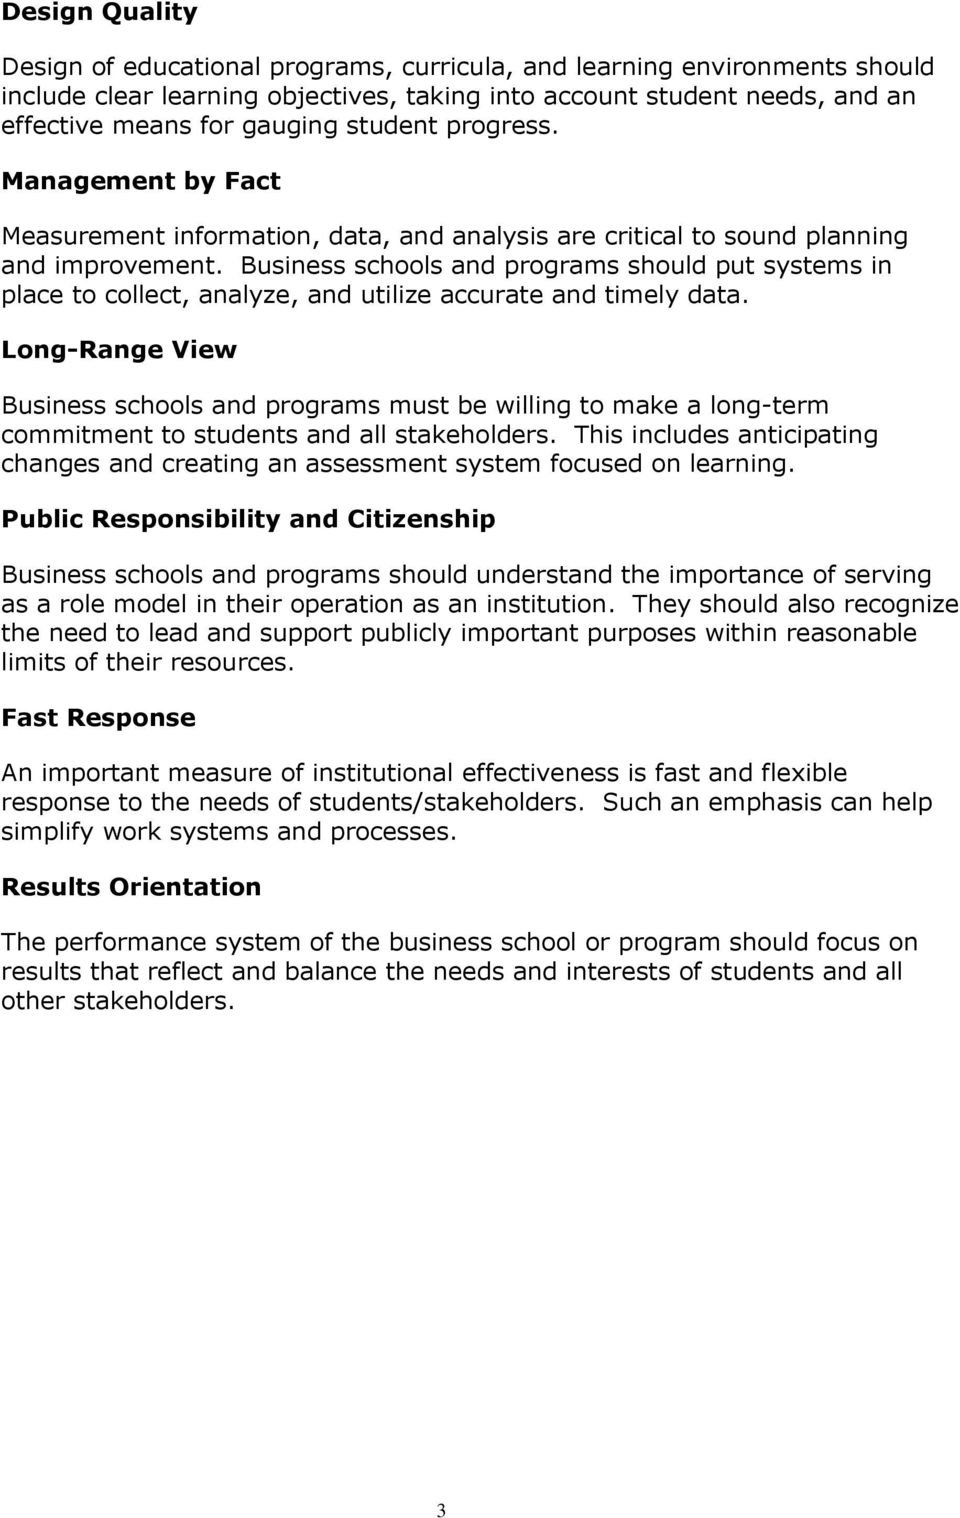 Business schools and programs should put systems in place to collect, analyze, and utilize accurate and timely data.